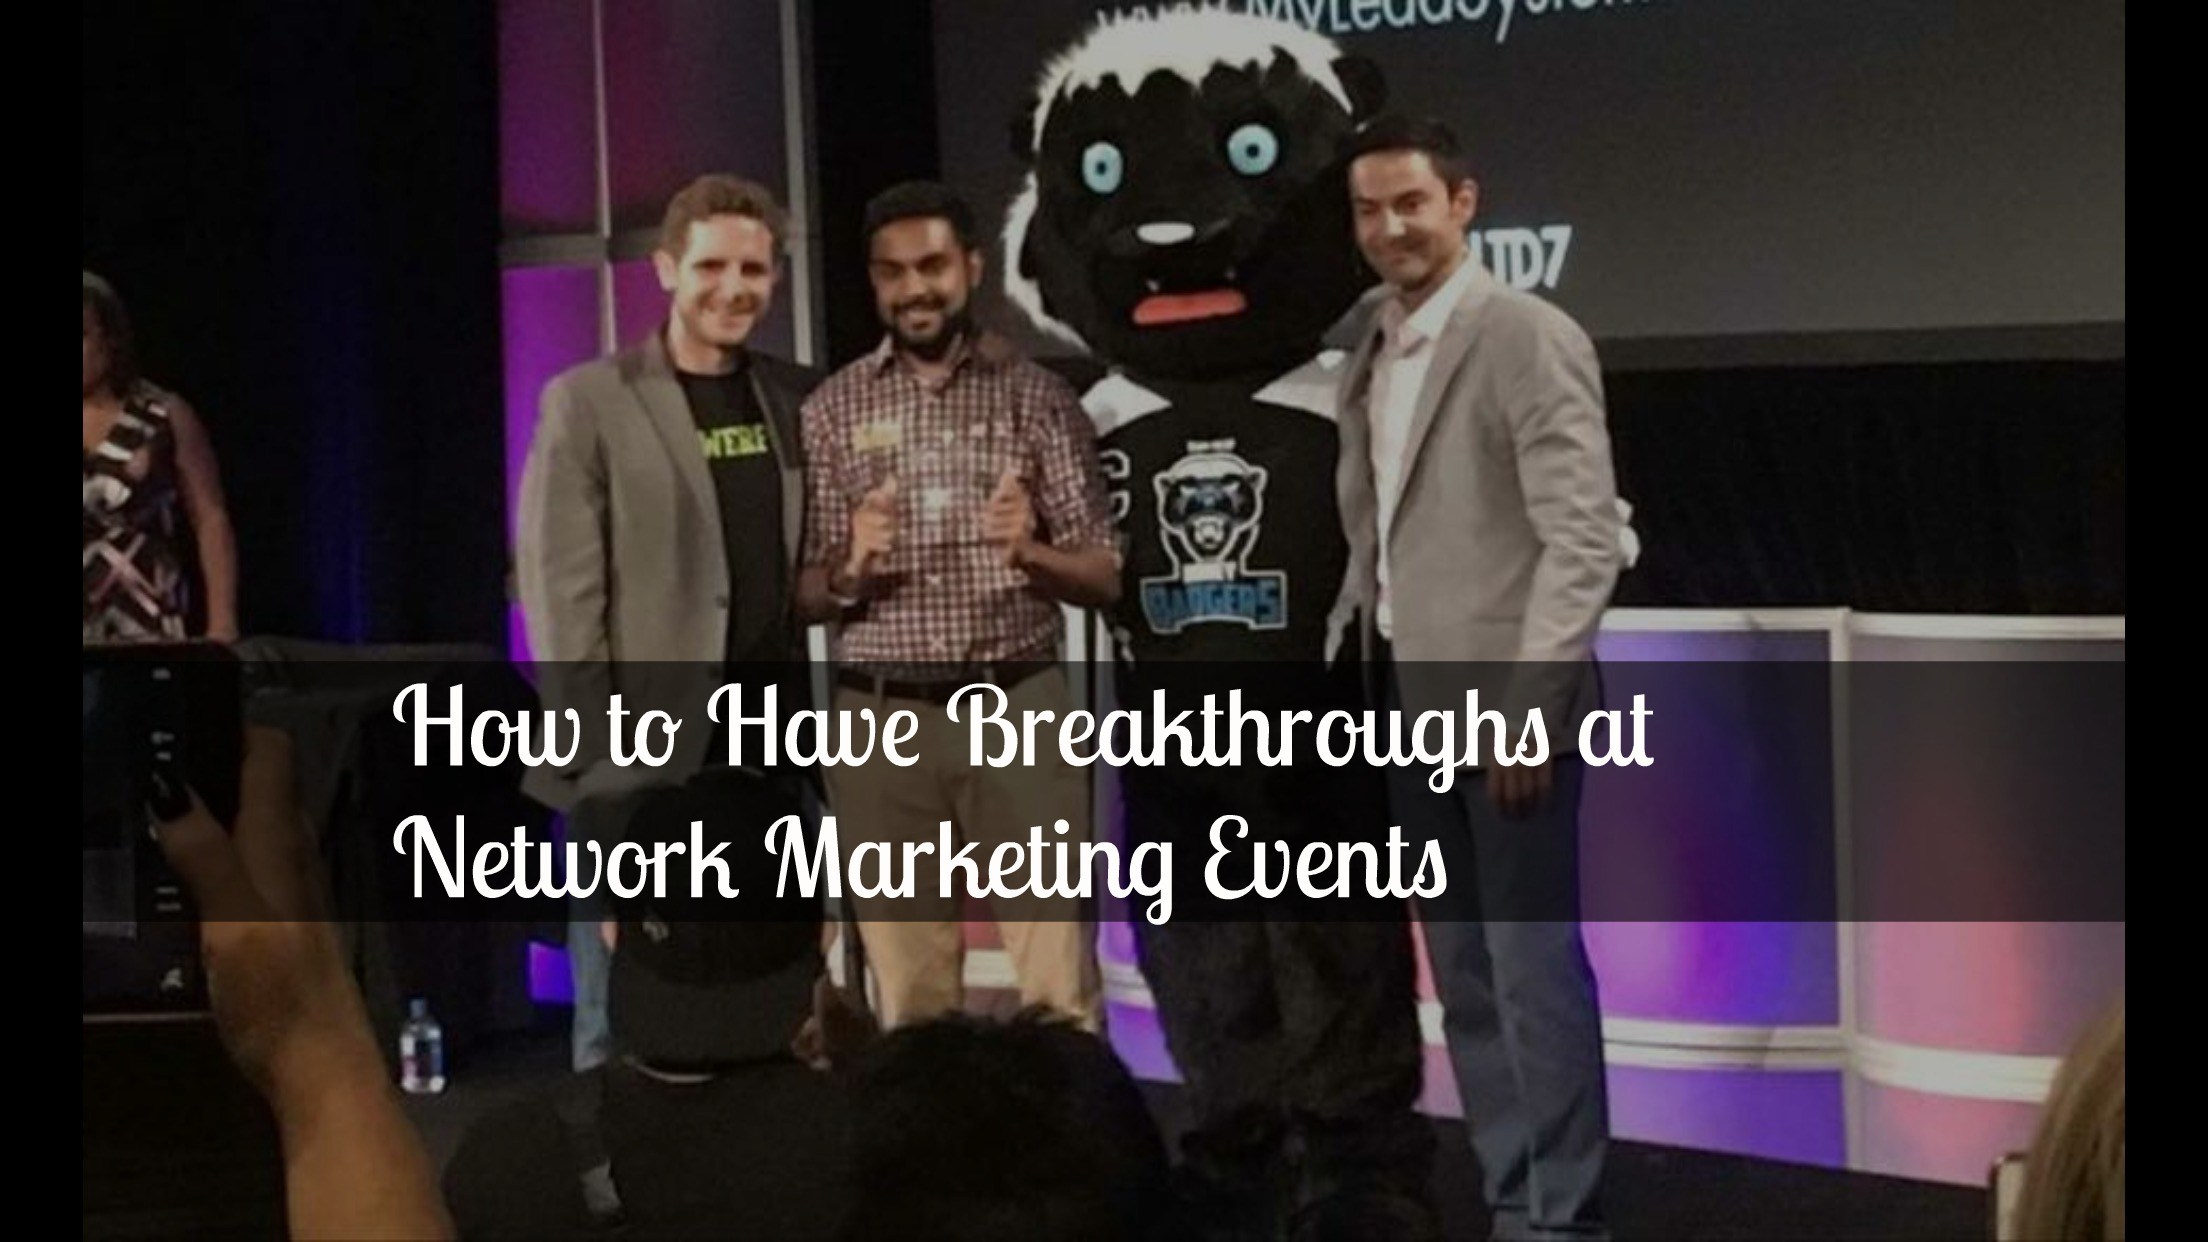 How to Have Breakthroughs at Network Marketing Events